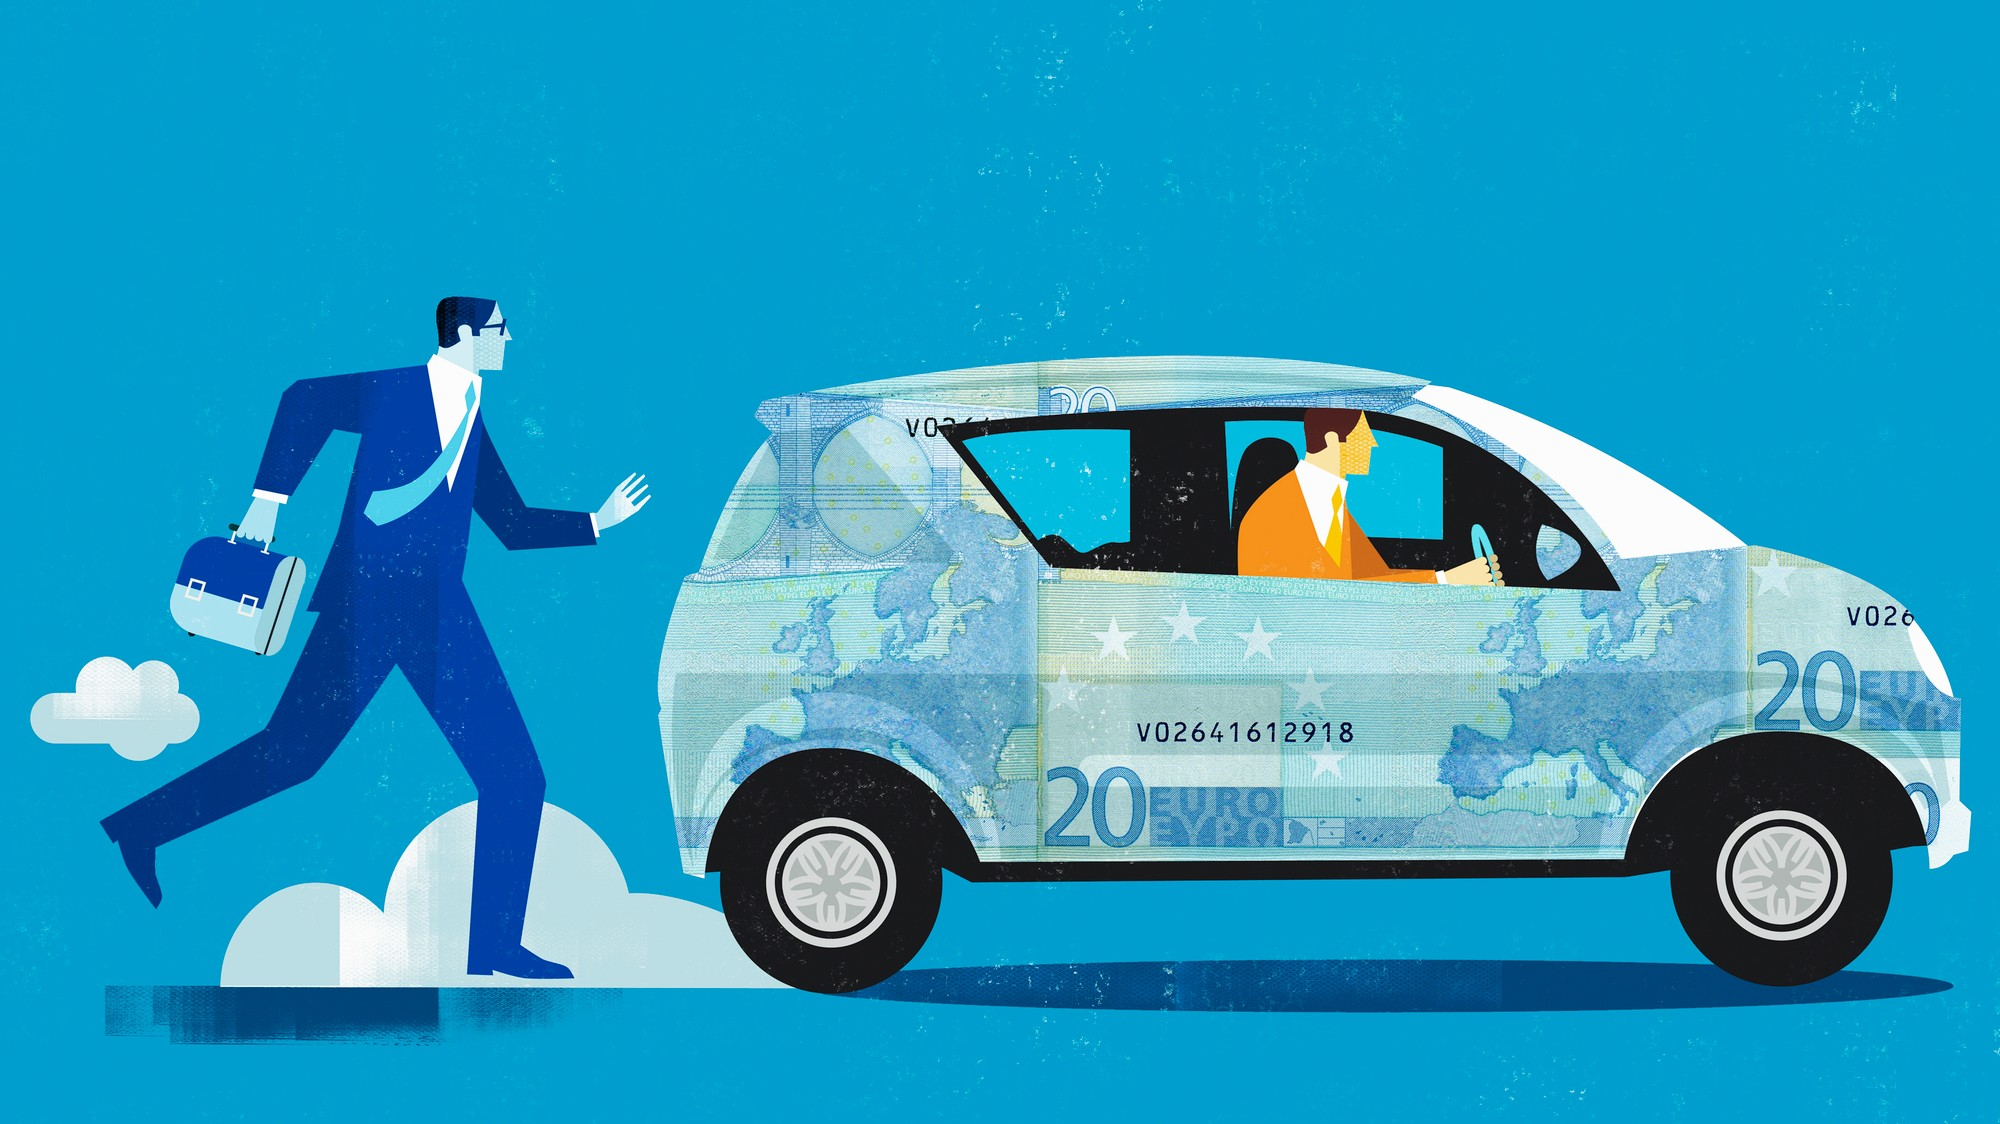 How Much Money Do People Spend on Uber? - VICE